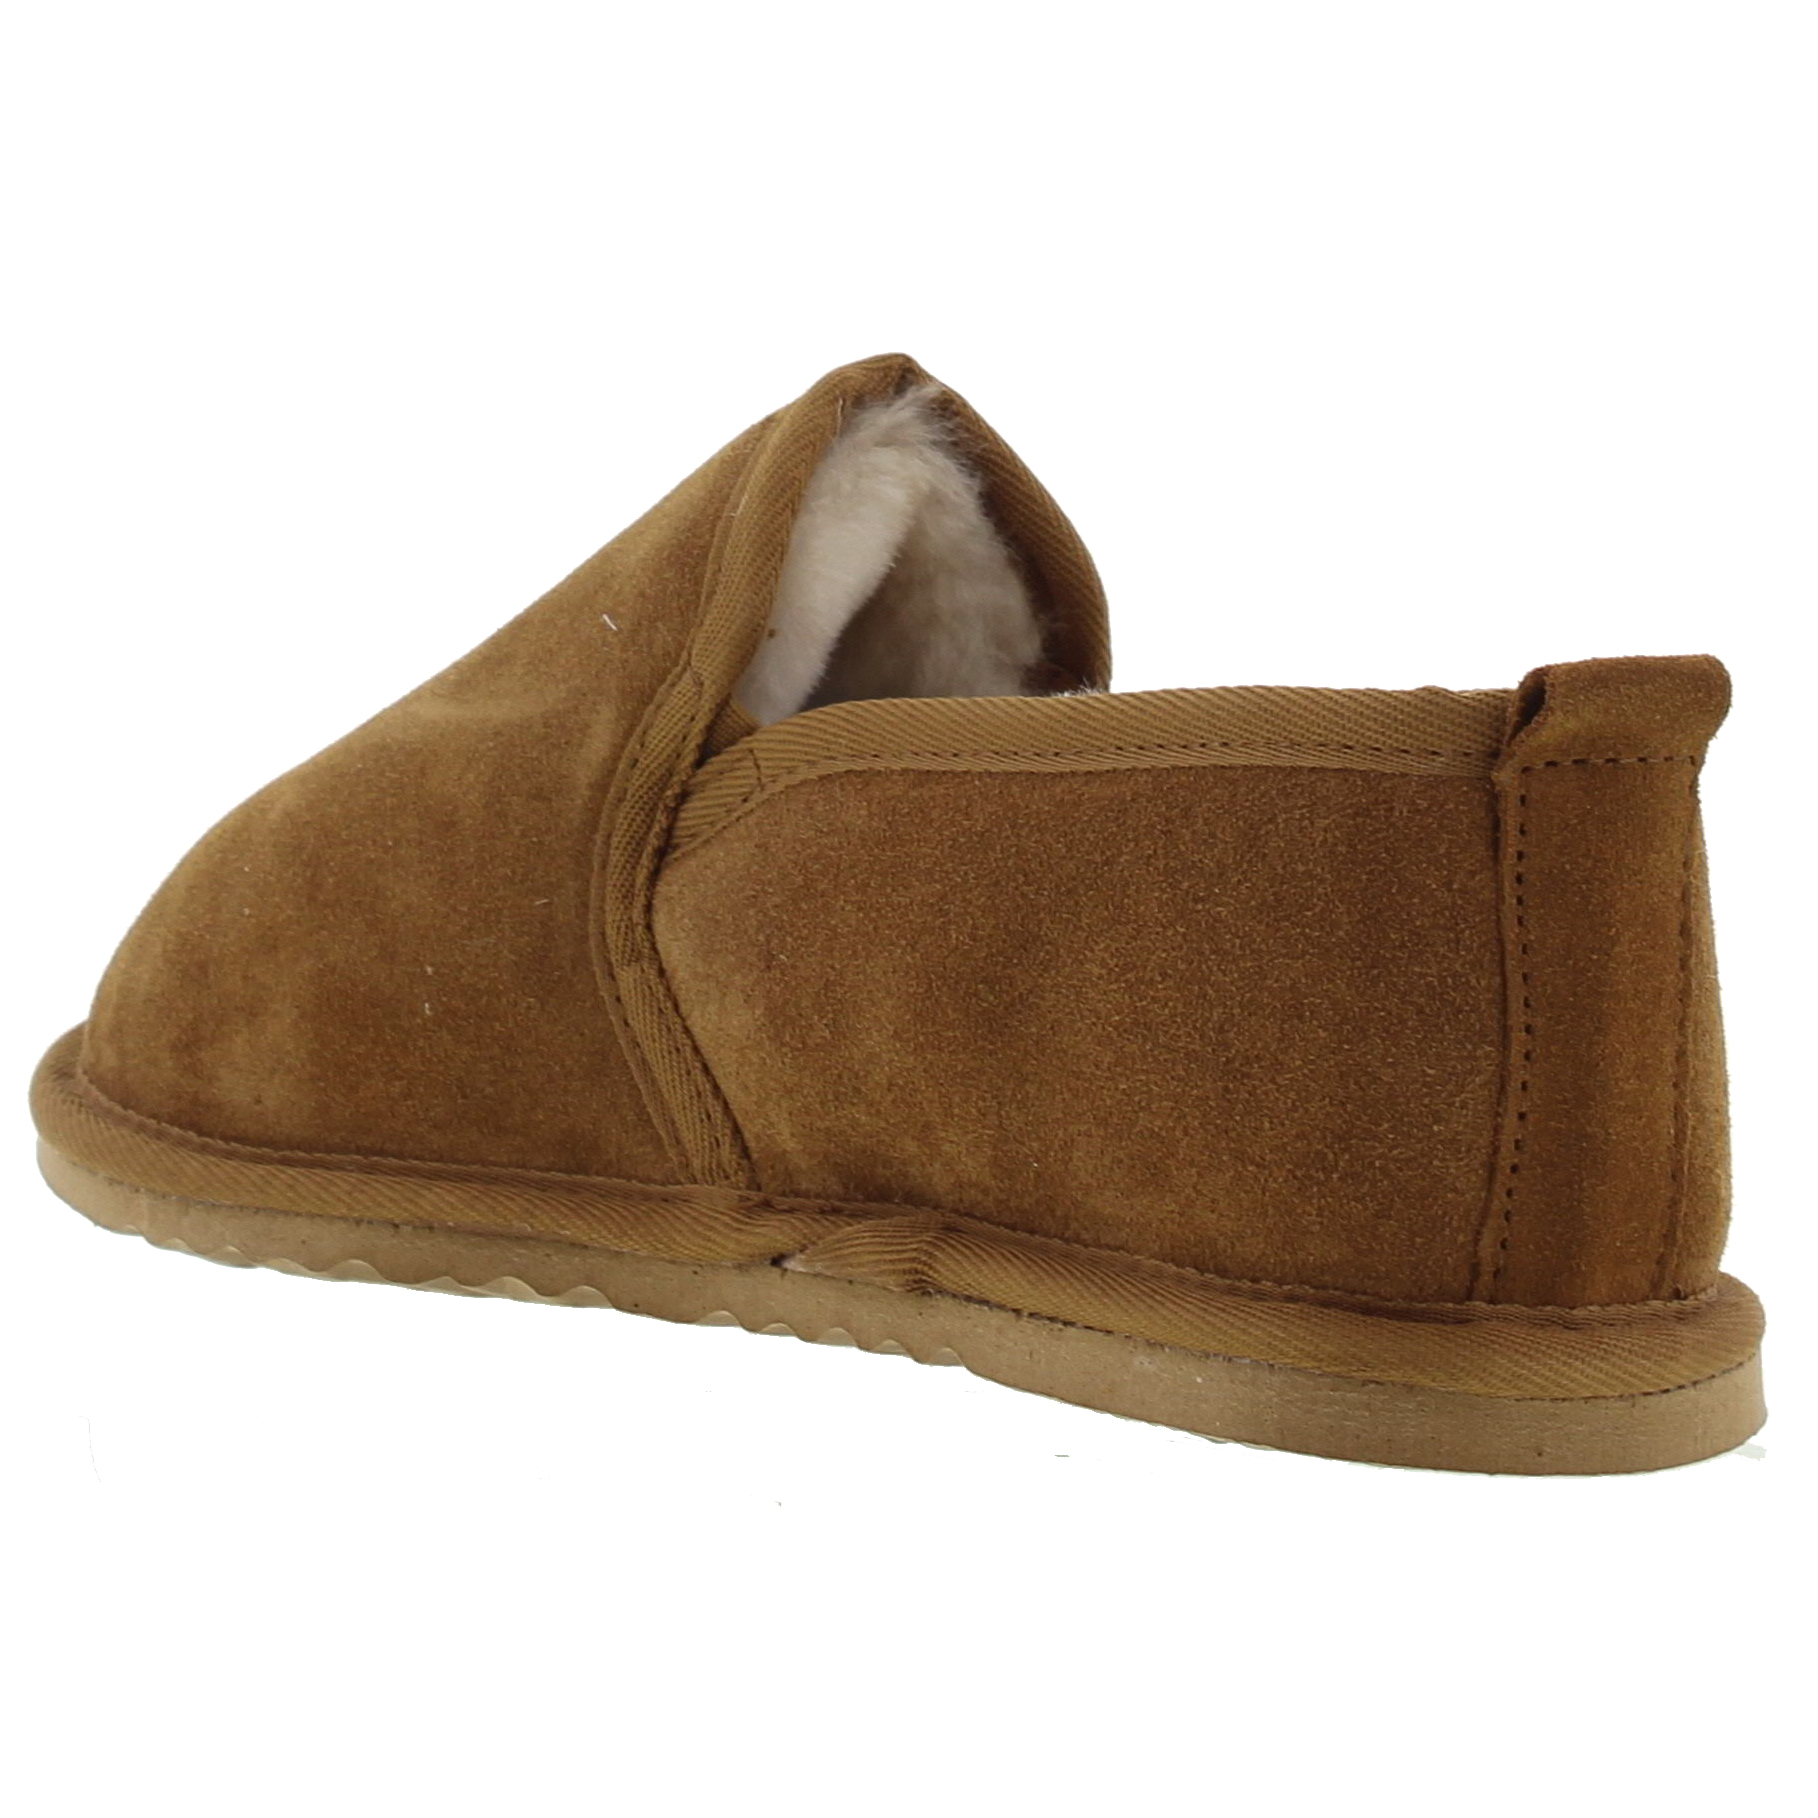 80cad1b9f24e29 Mens Ugg Slippers Debenhams - cheap watches mgc-gas.com